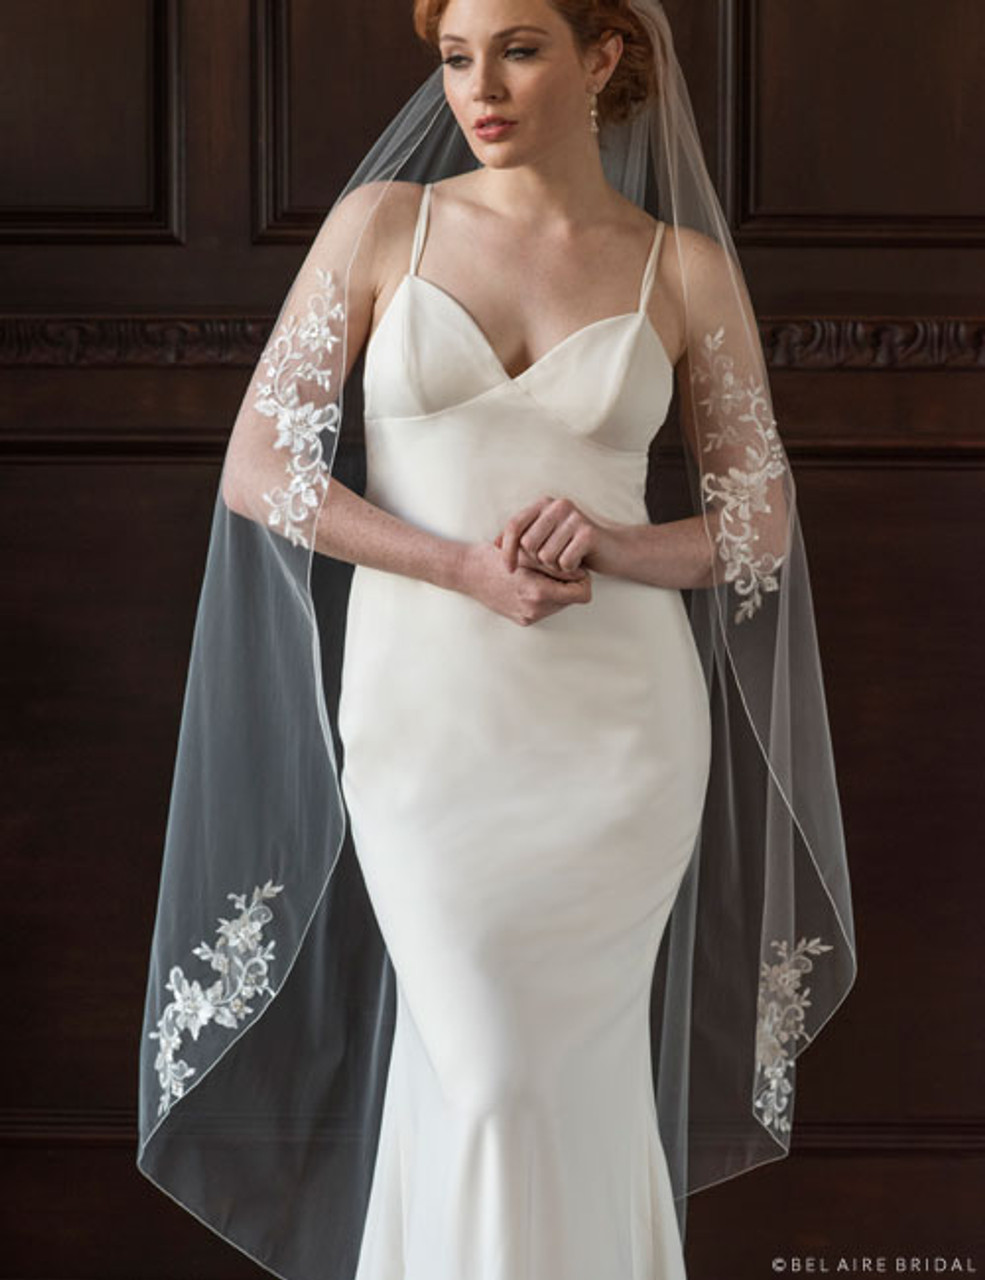 Bel Aire Bridal Veils V7365 -1-tier waltz length veil with Schiffli lace appliqués